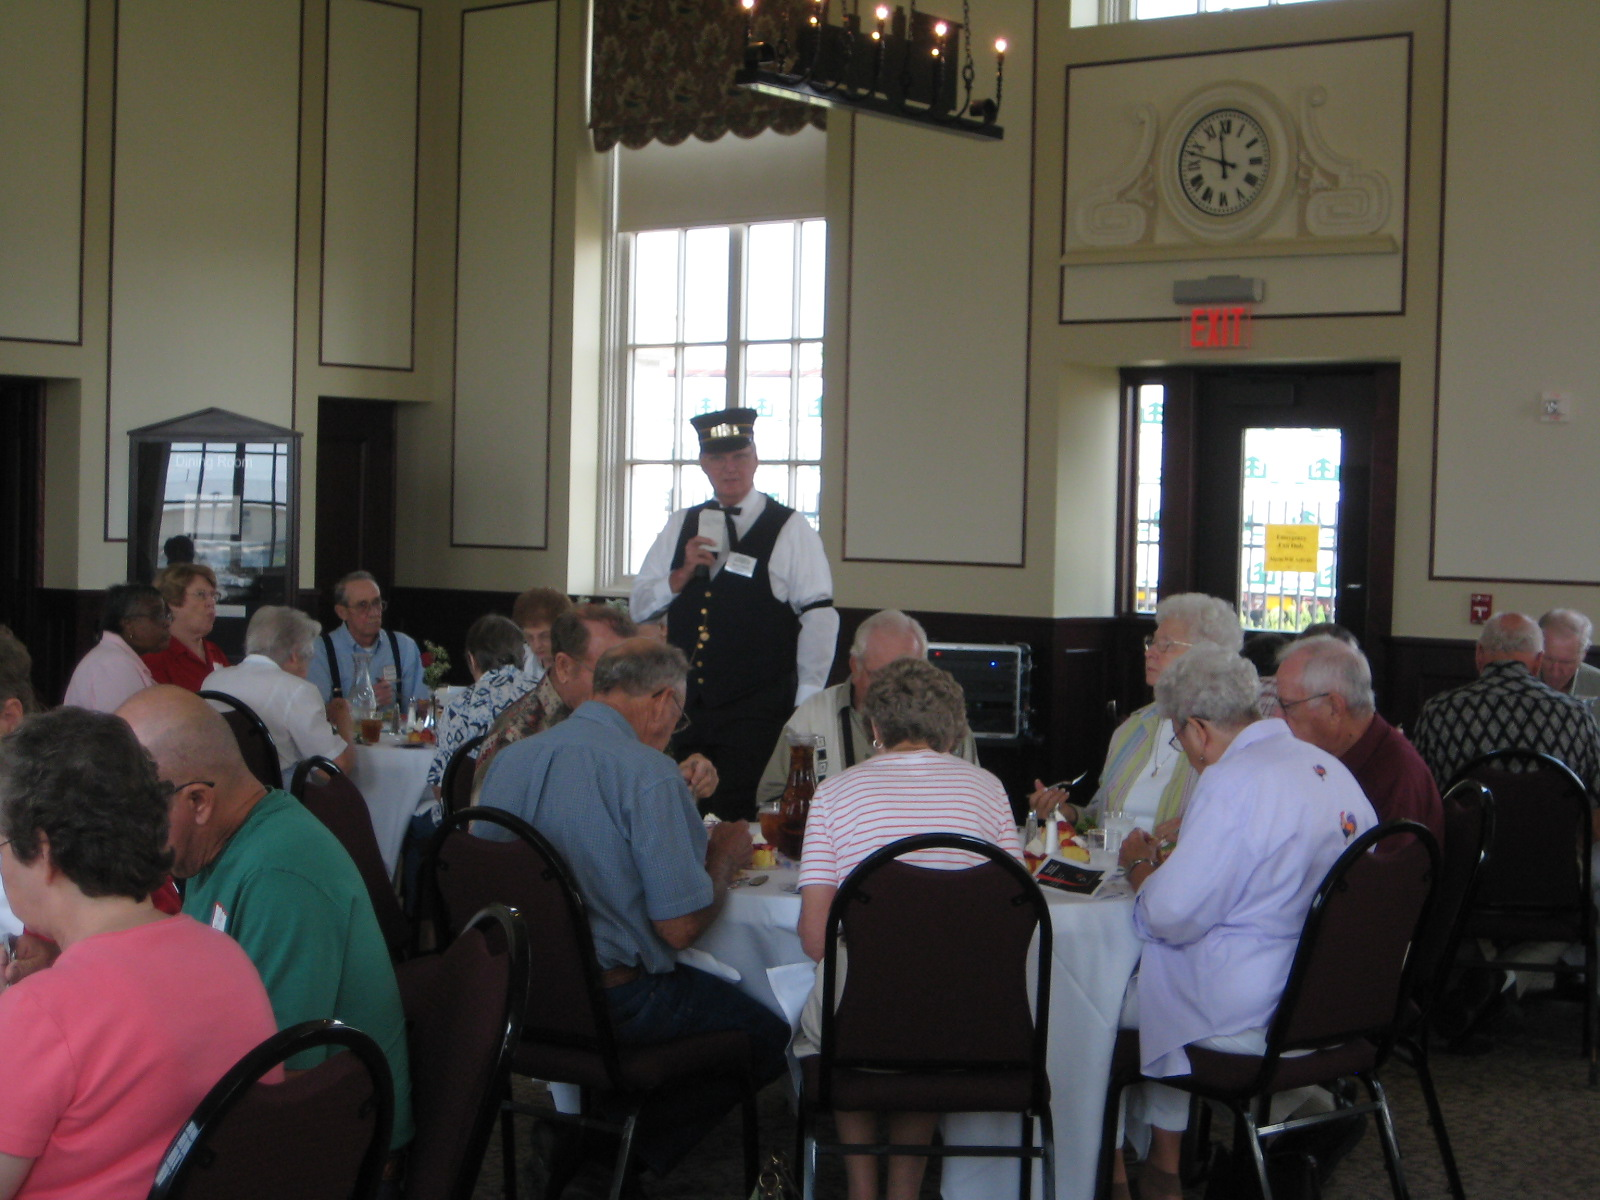 Historical Harvey House luncheons can be scheduled for groups of 25 or more Tuesday through Friday between 11:00 a.m. – 2:30 p.m.